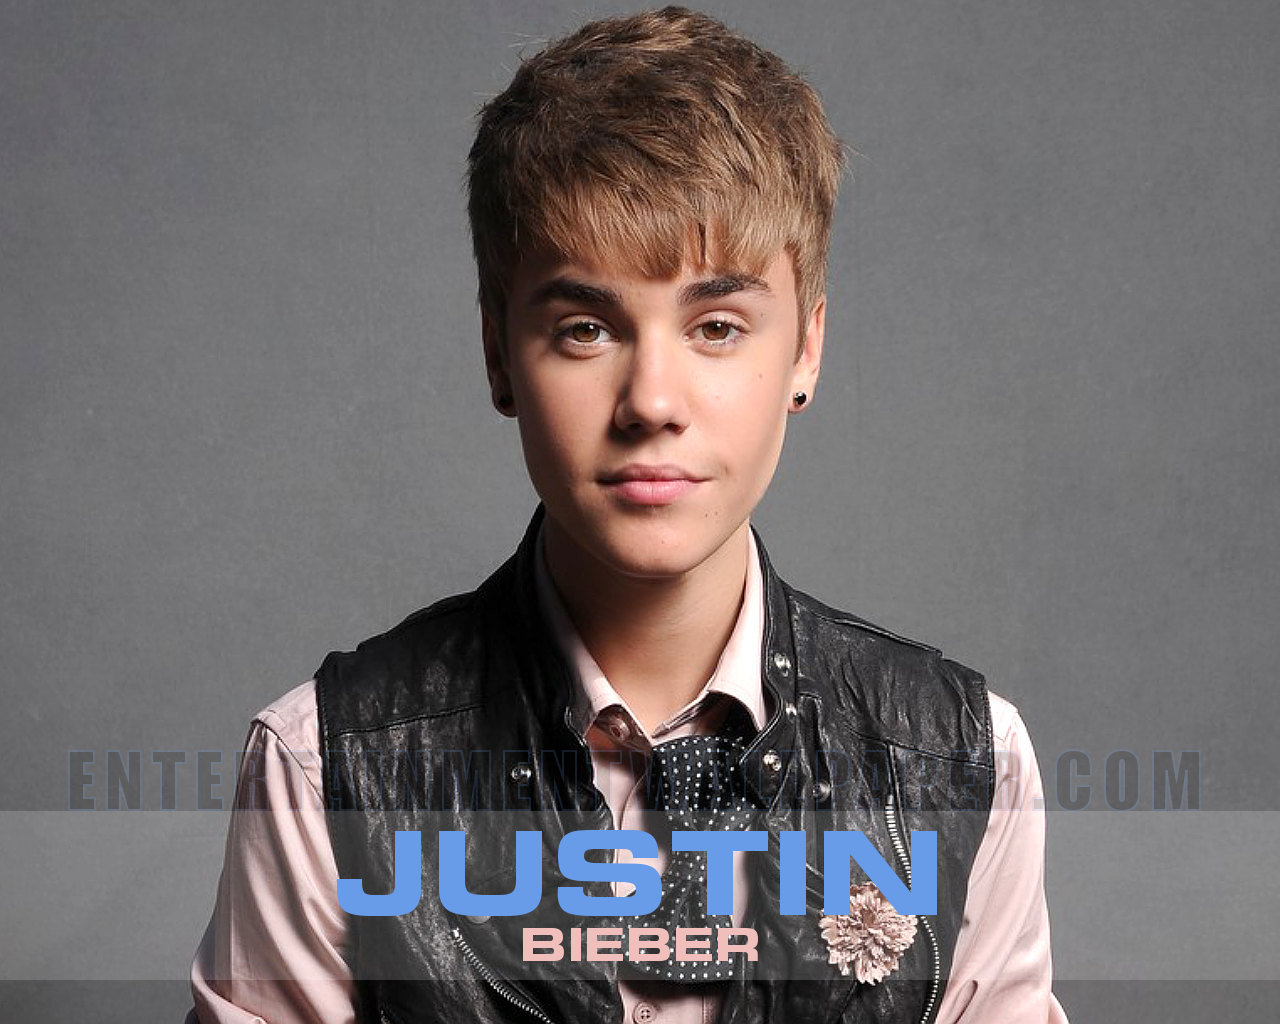 justin bieber funny and cute faces 2011.wmv - YouTube |Justin Bieber 2012 Cute Face